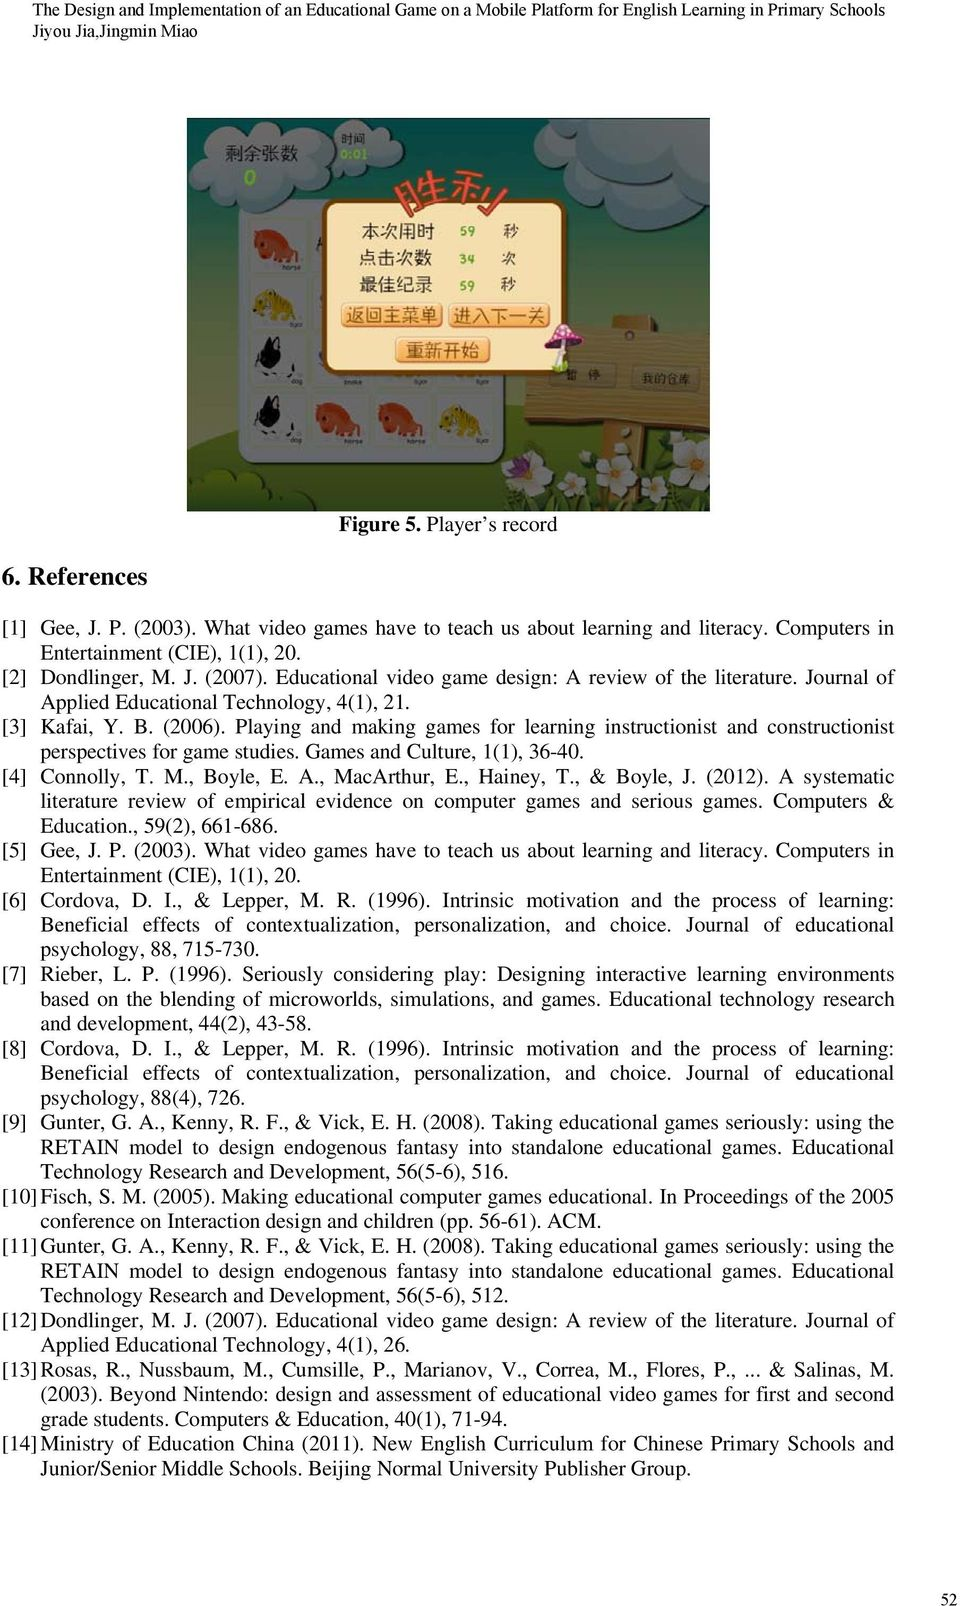 Playing and making games for learning instructionist and constructionist perspectives for game studies. Games and Culture, 1(1), 36-40. [4] Connolly, T. M., Boyle, E. A., MacArthur, E., Hainey, T.